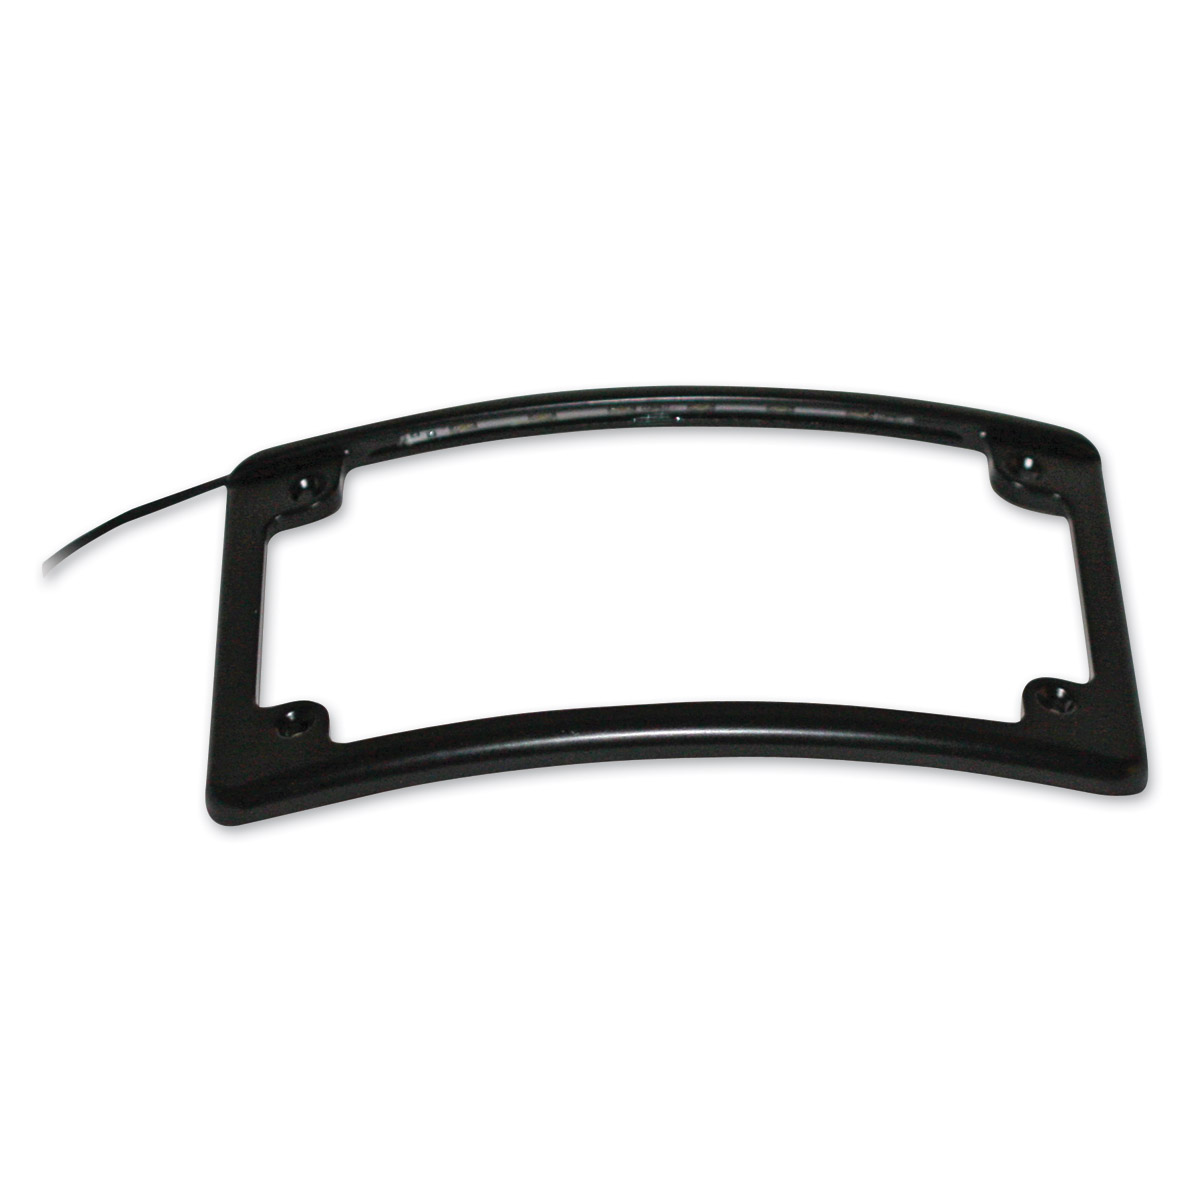 Custom Dynamics Radius LED License Plate Frame | 724-317 | J&P Cycles